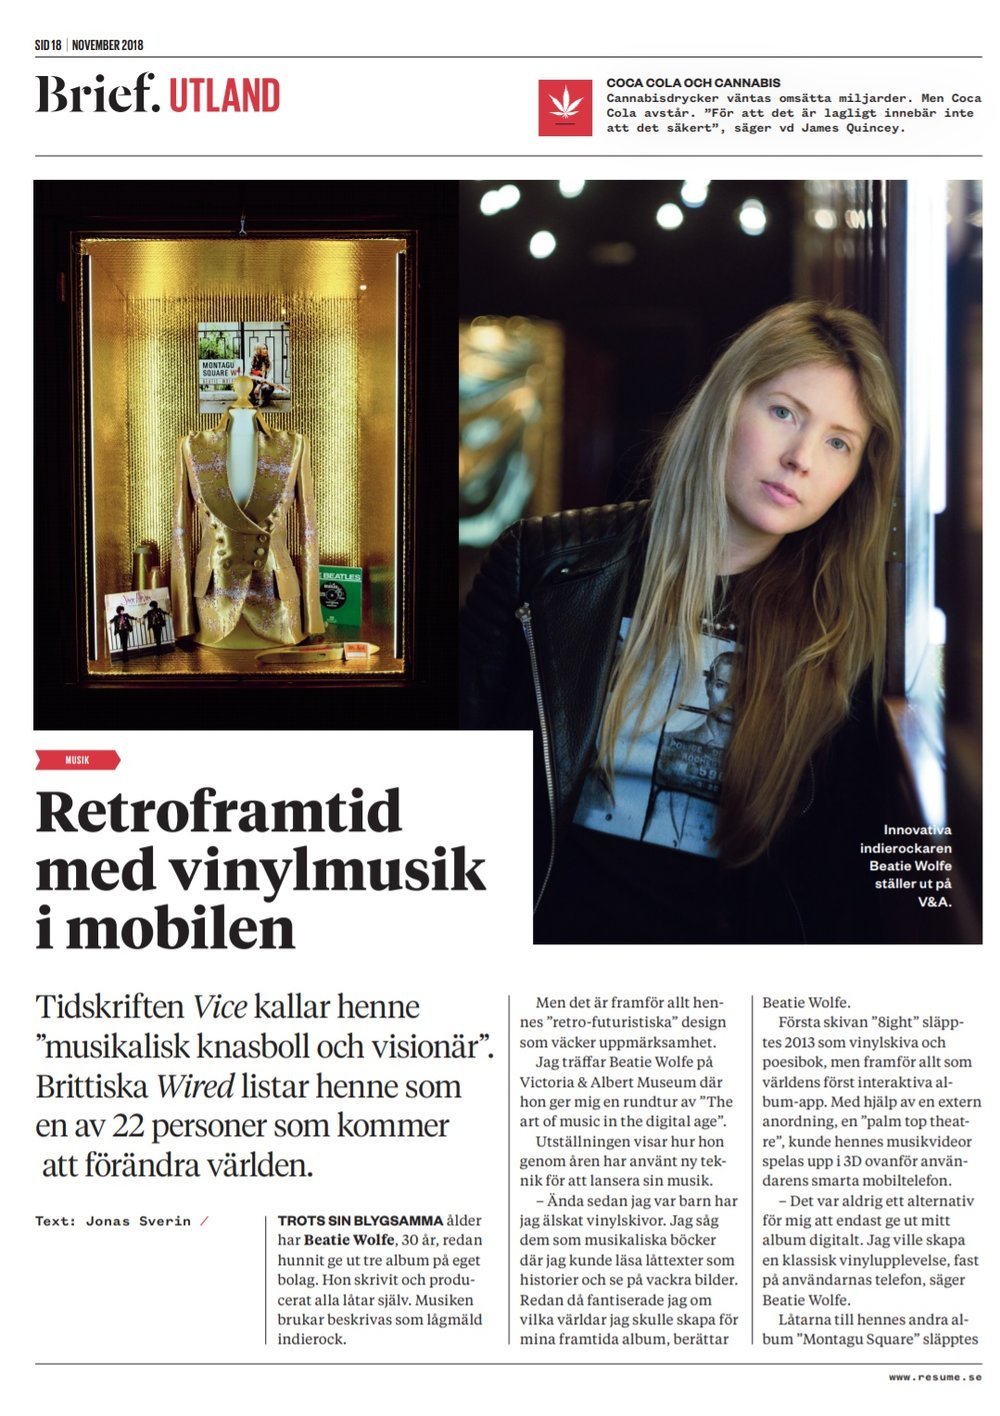 Resume Magazine (Sweden) on Beatie Wolfe p.18